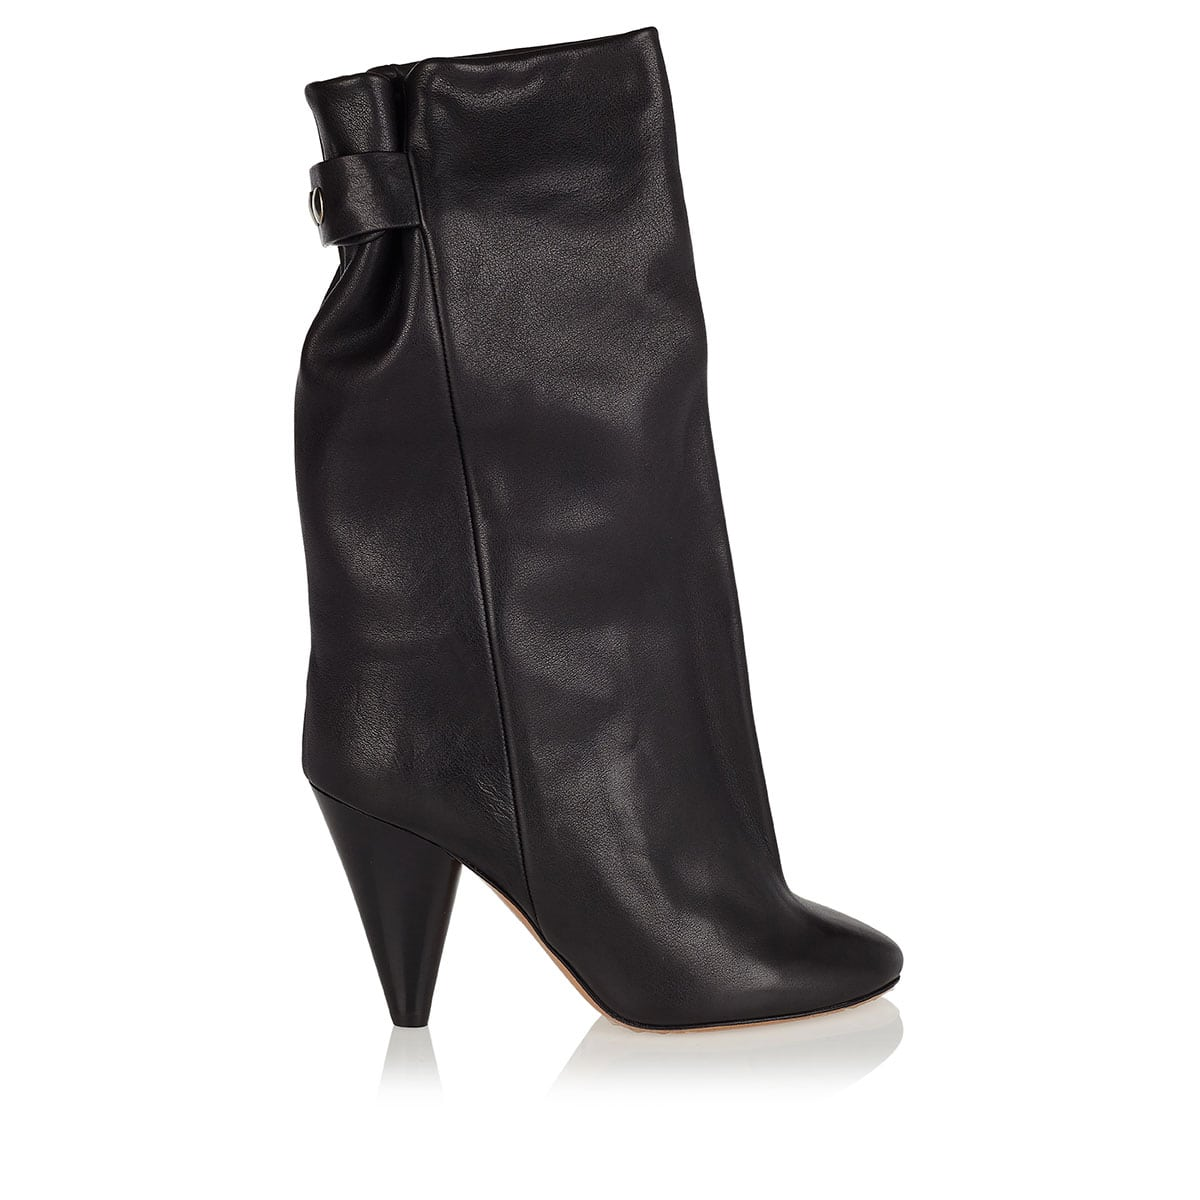 Lakfee slouchy leather boots